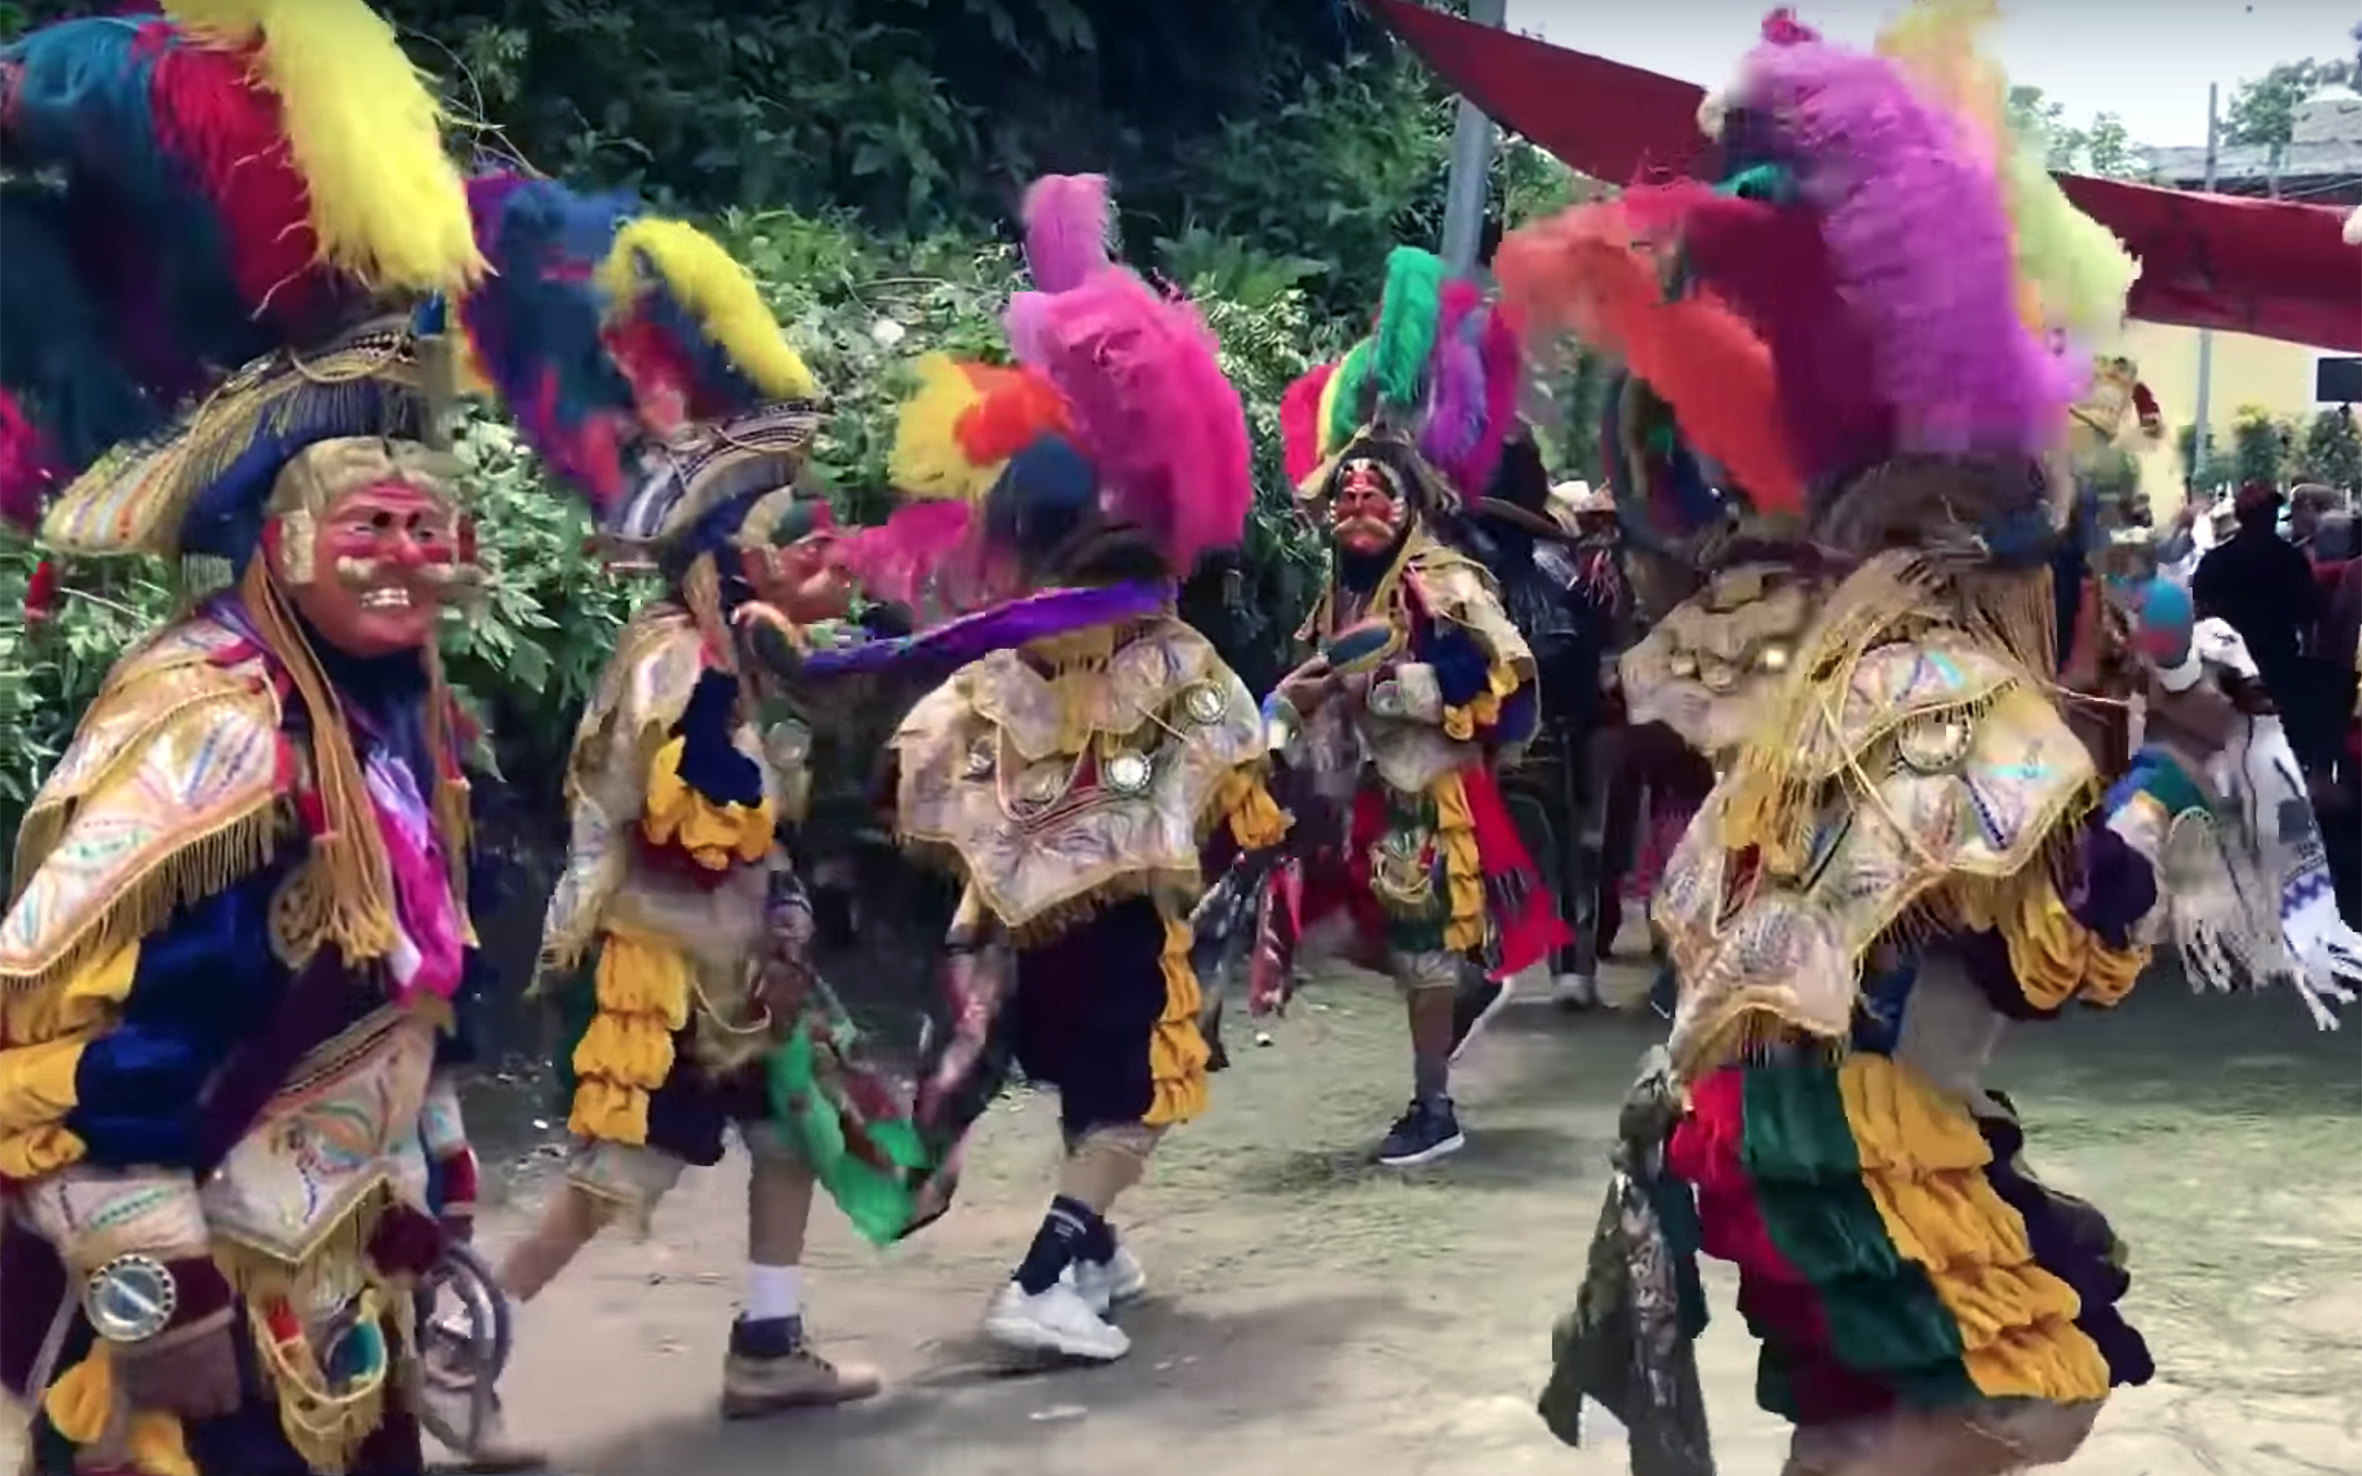 266.El torito / Guatemala - El torito is a folk dance from Guatemala and other Central American countries.